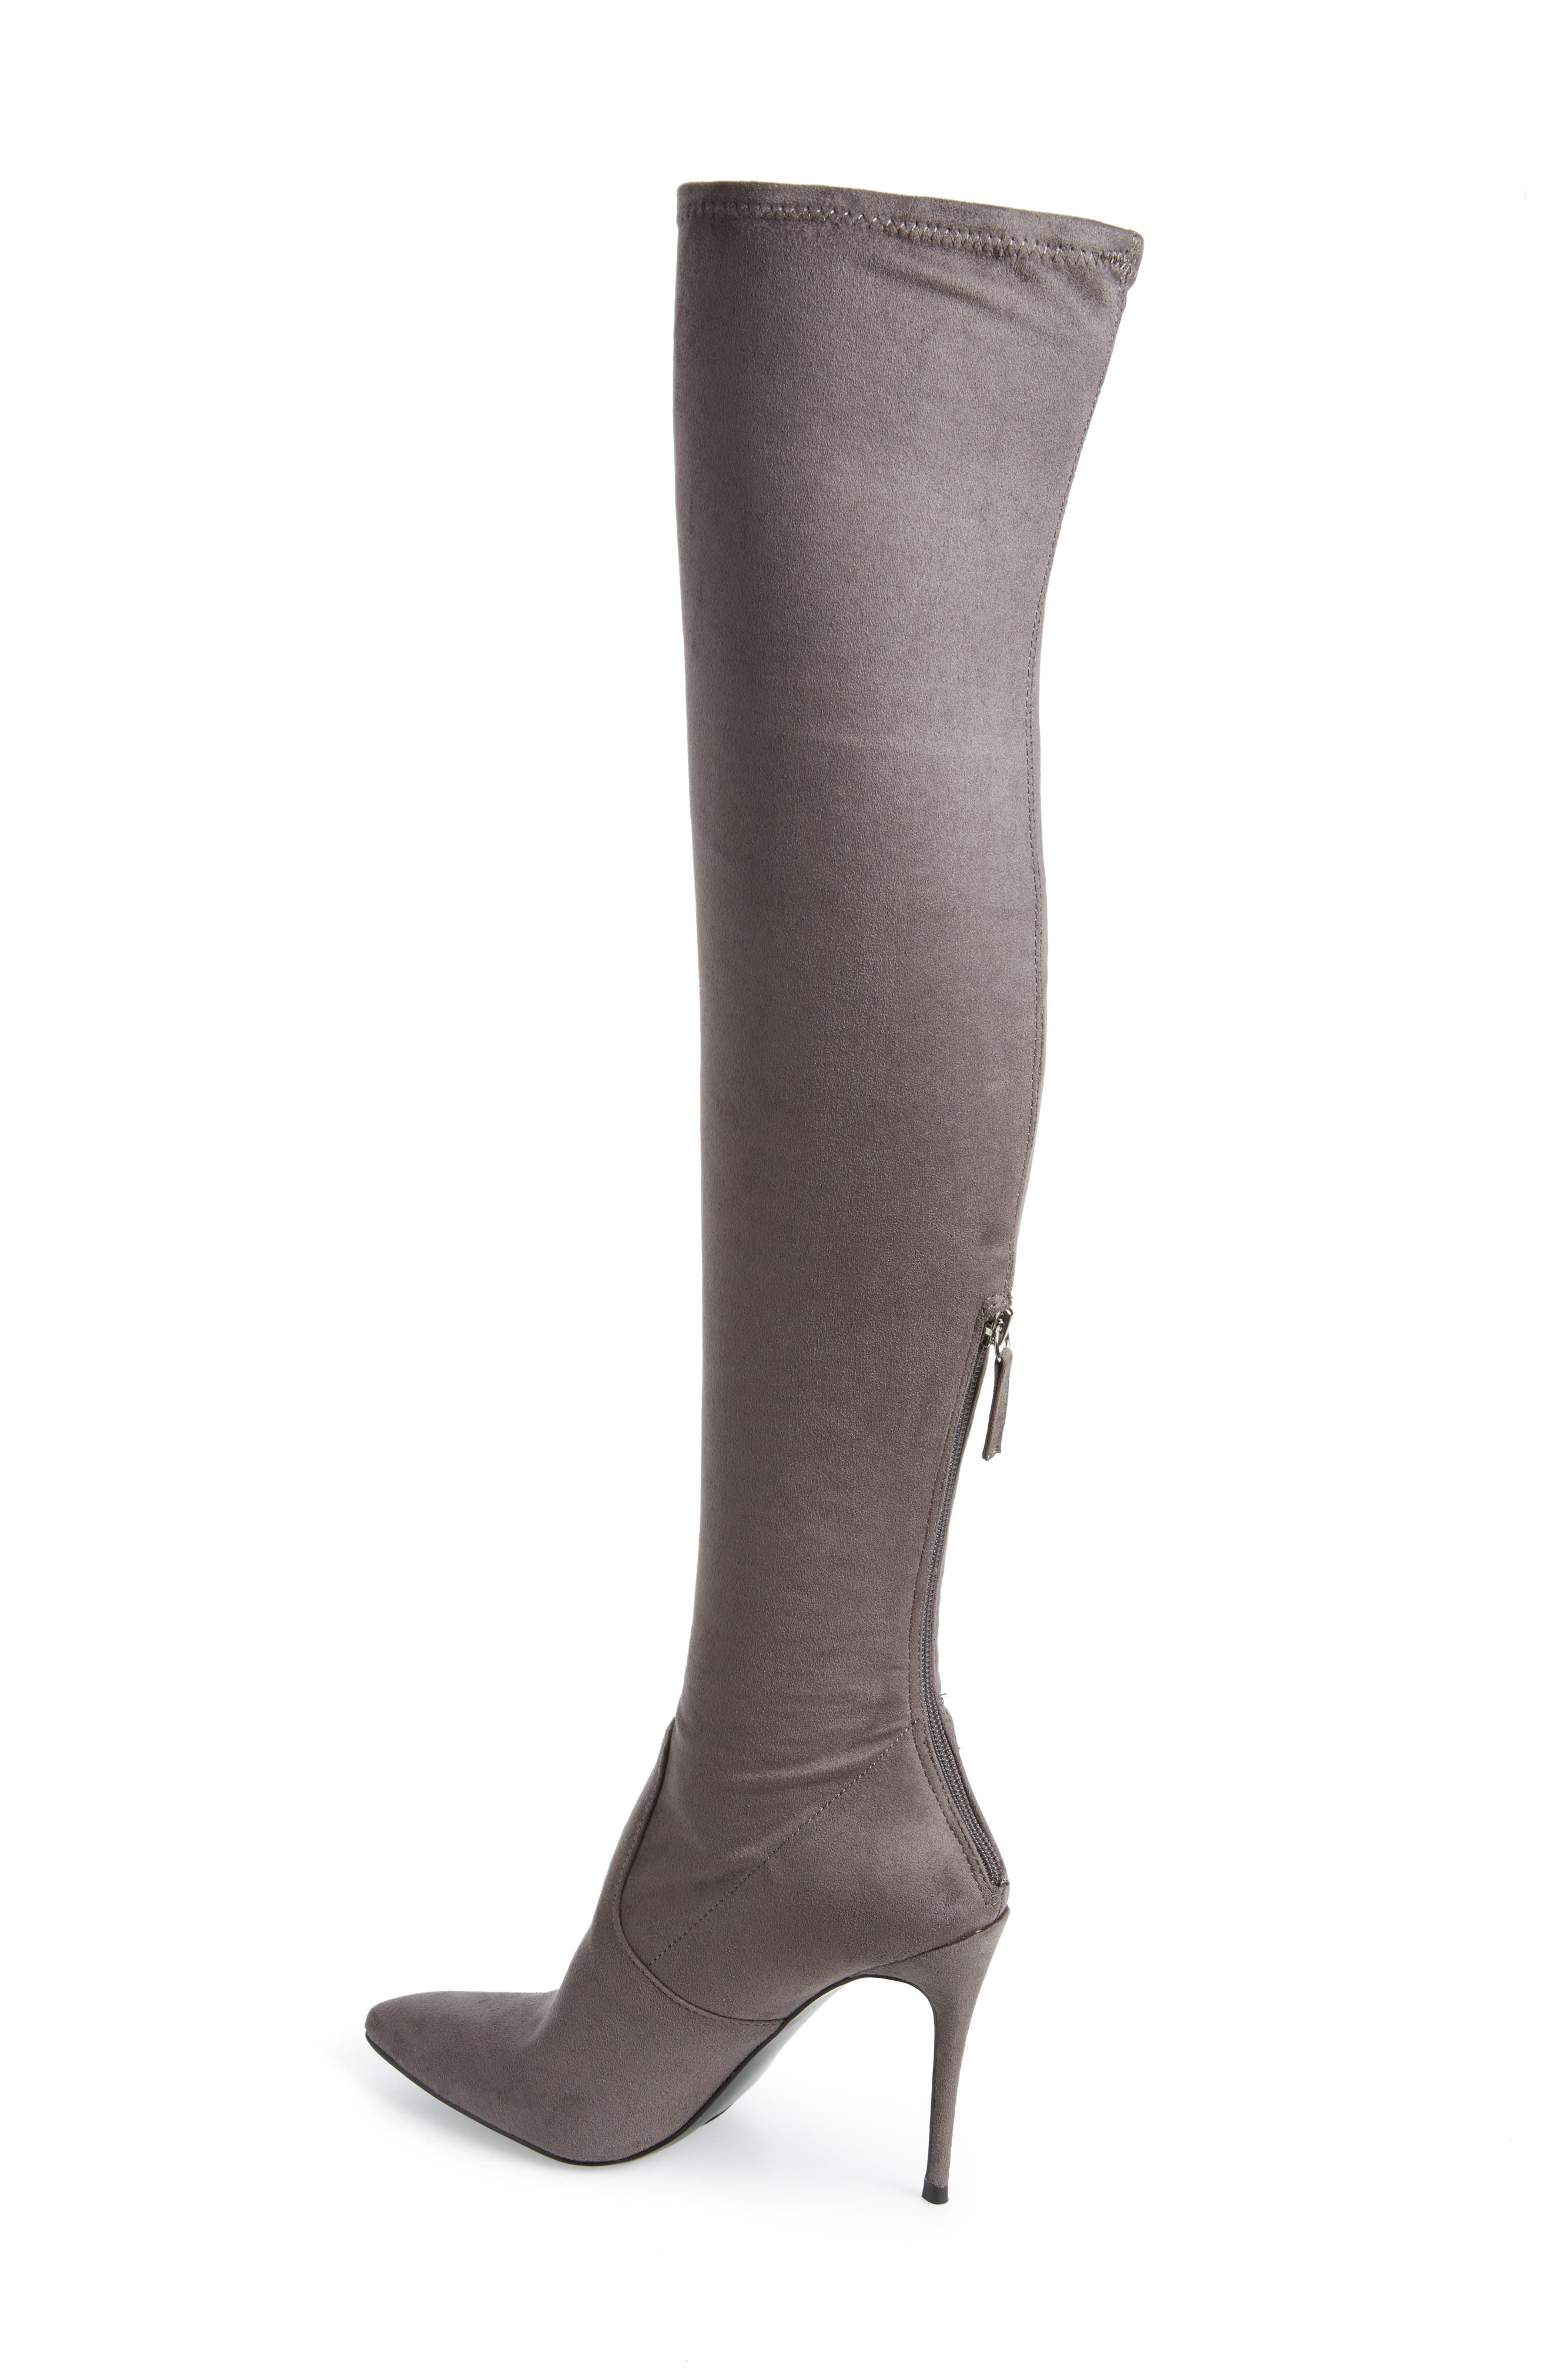 Devine Over the Knee Boot,                             Alternate thumbnail 2, color,                             GREY SUEDE